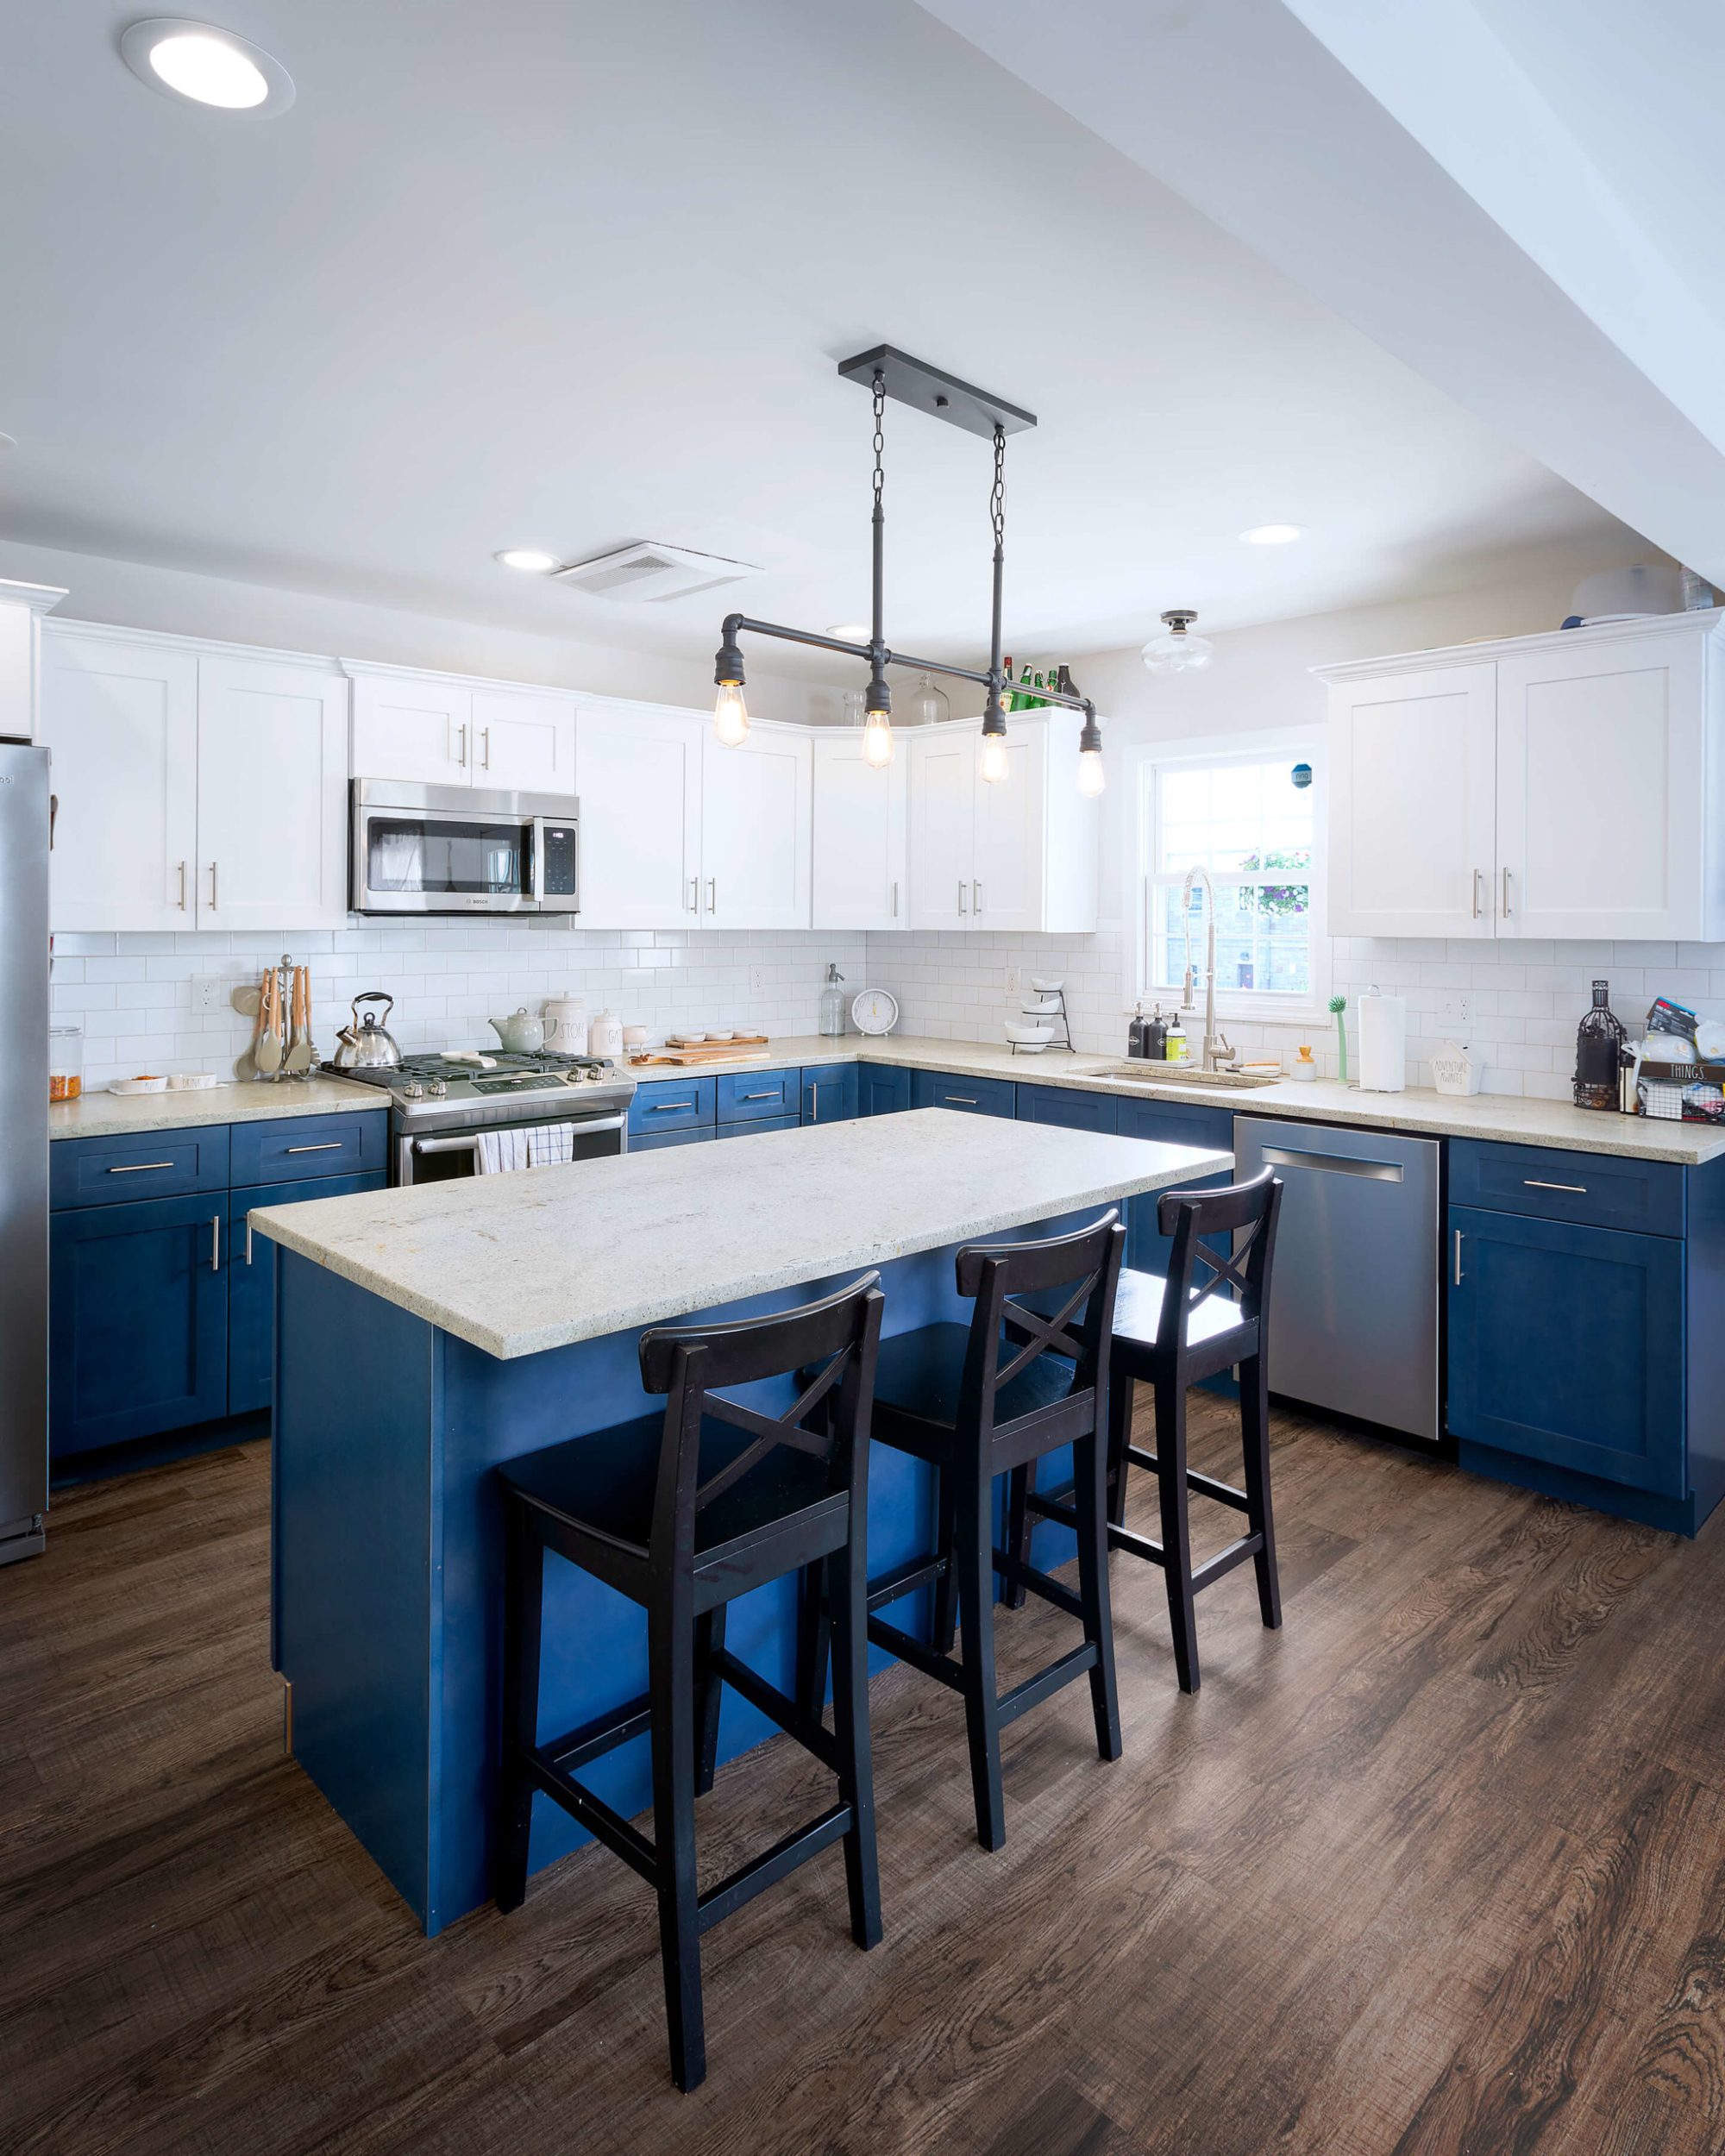 View of the island in the kitchen of this Hamden remodel